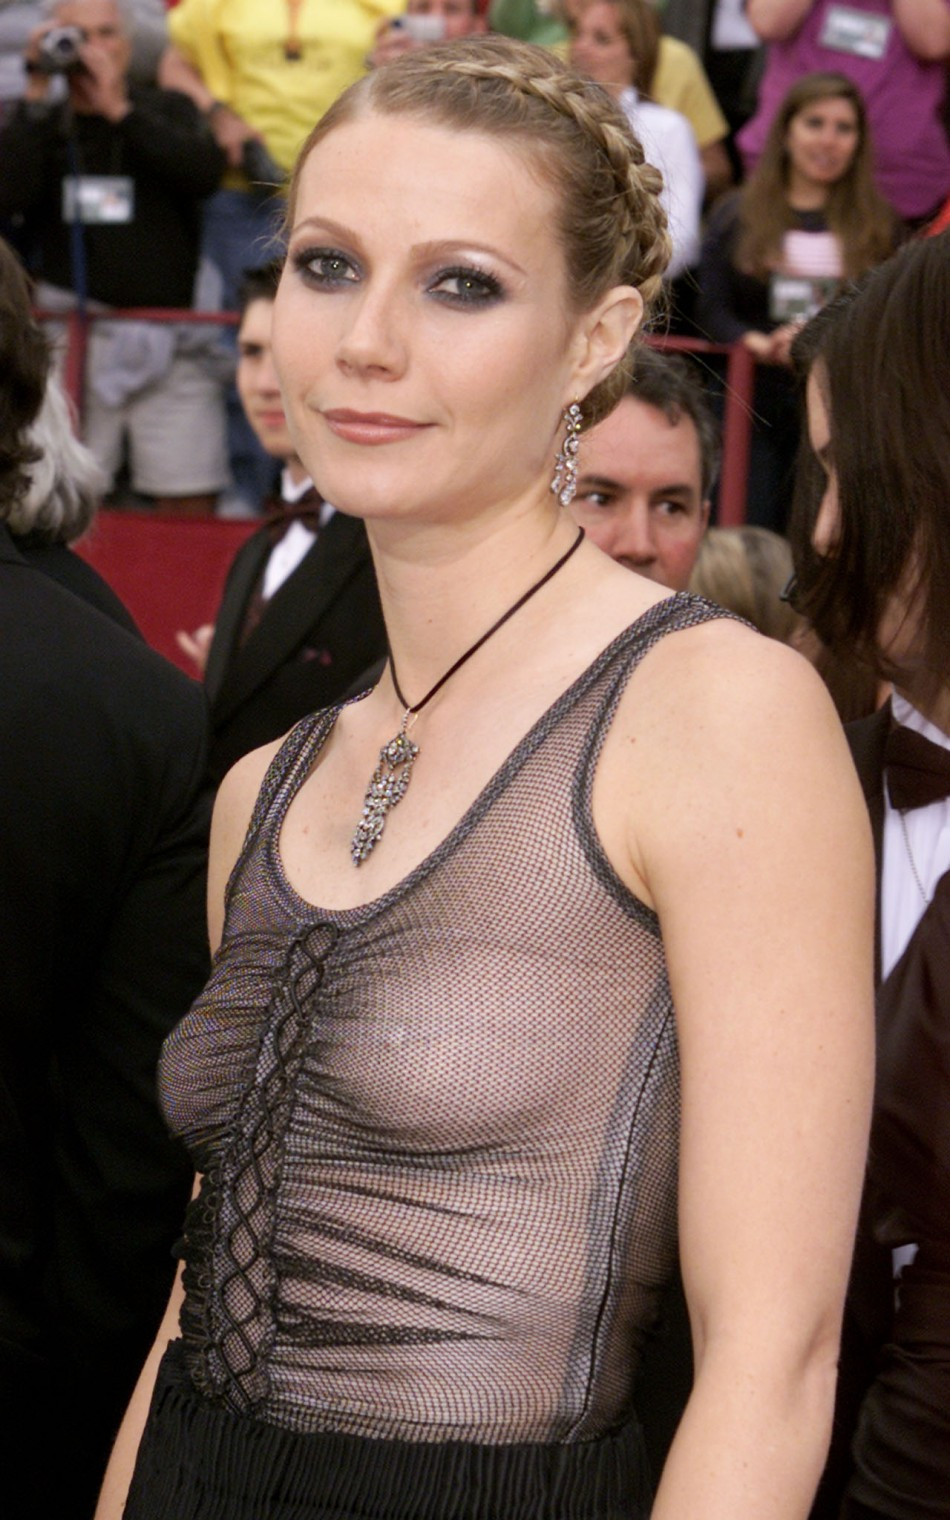 ACTRESS GWYNETH PALTROW ARRIVES FOR ACADEMY AWARDS.